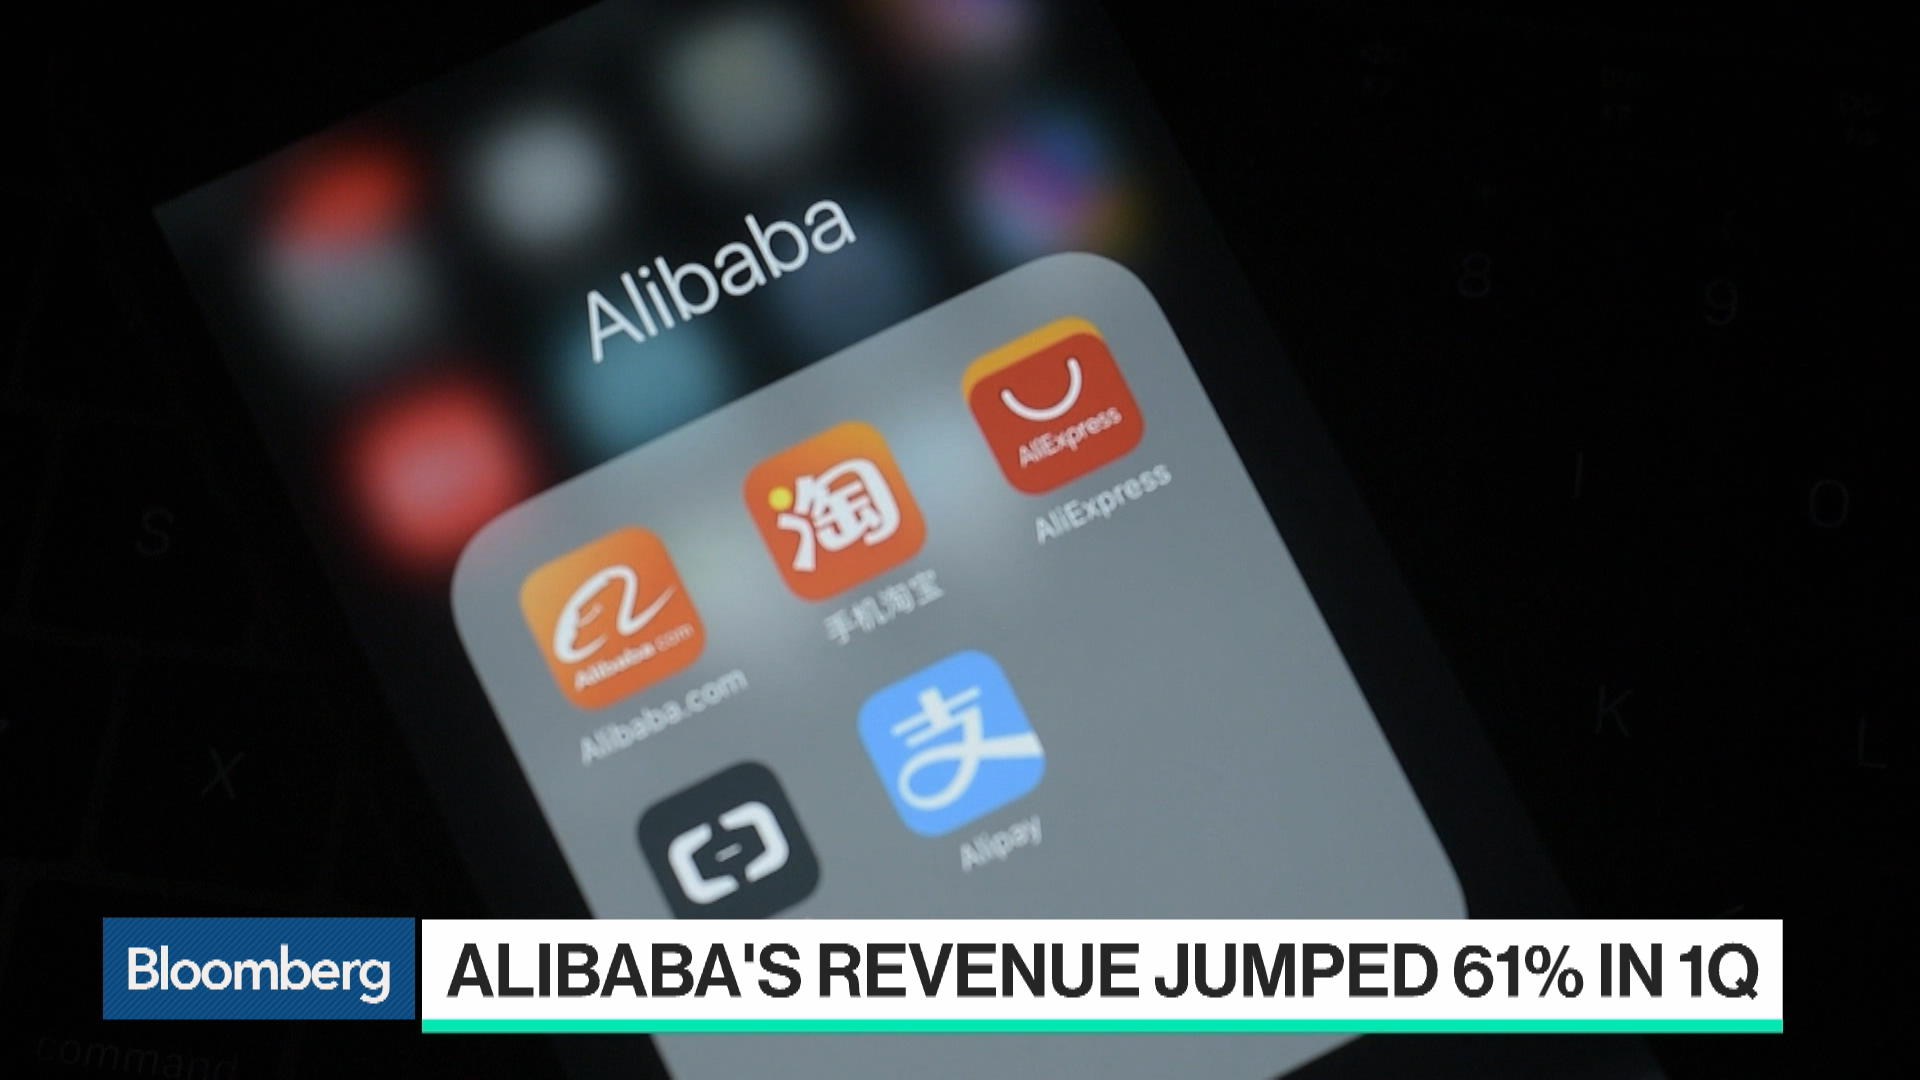 Babanew York Stock Quote Alibaba Group Holding Ltd Bloomberg